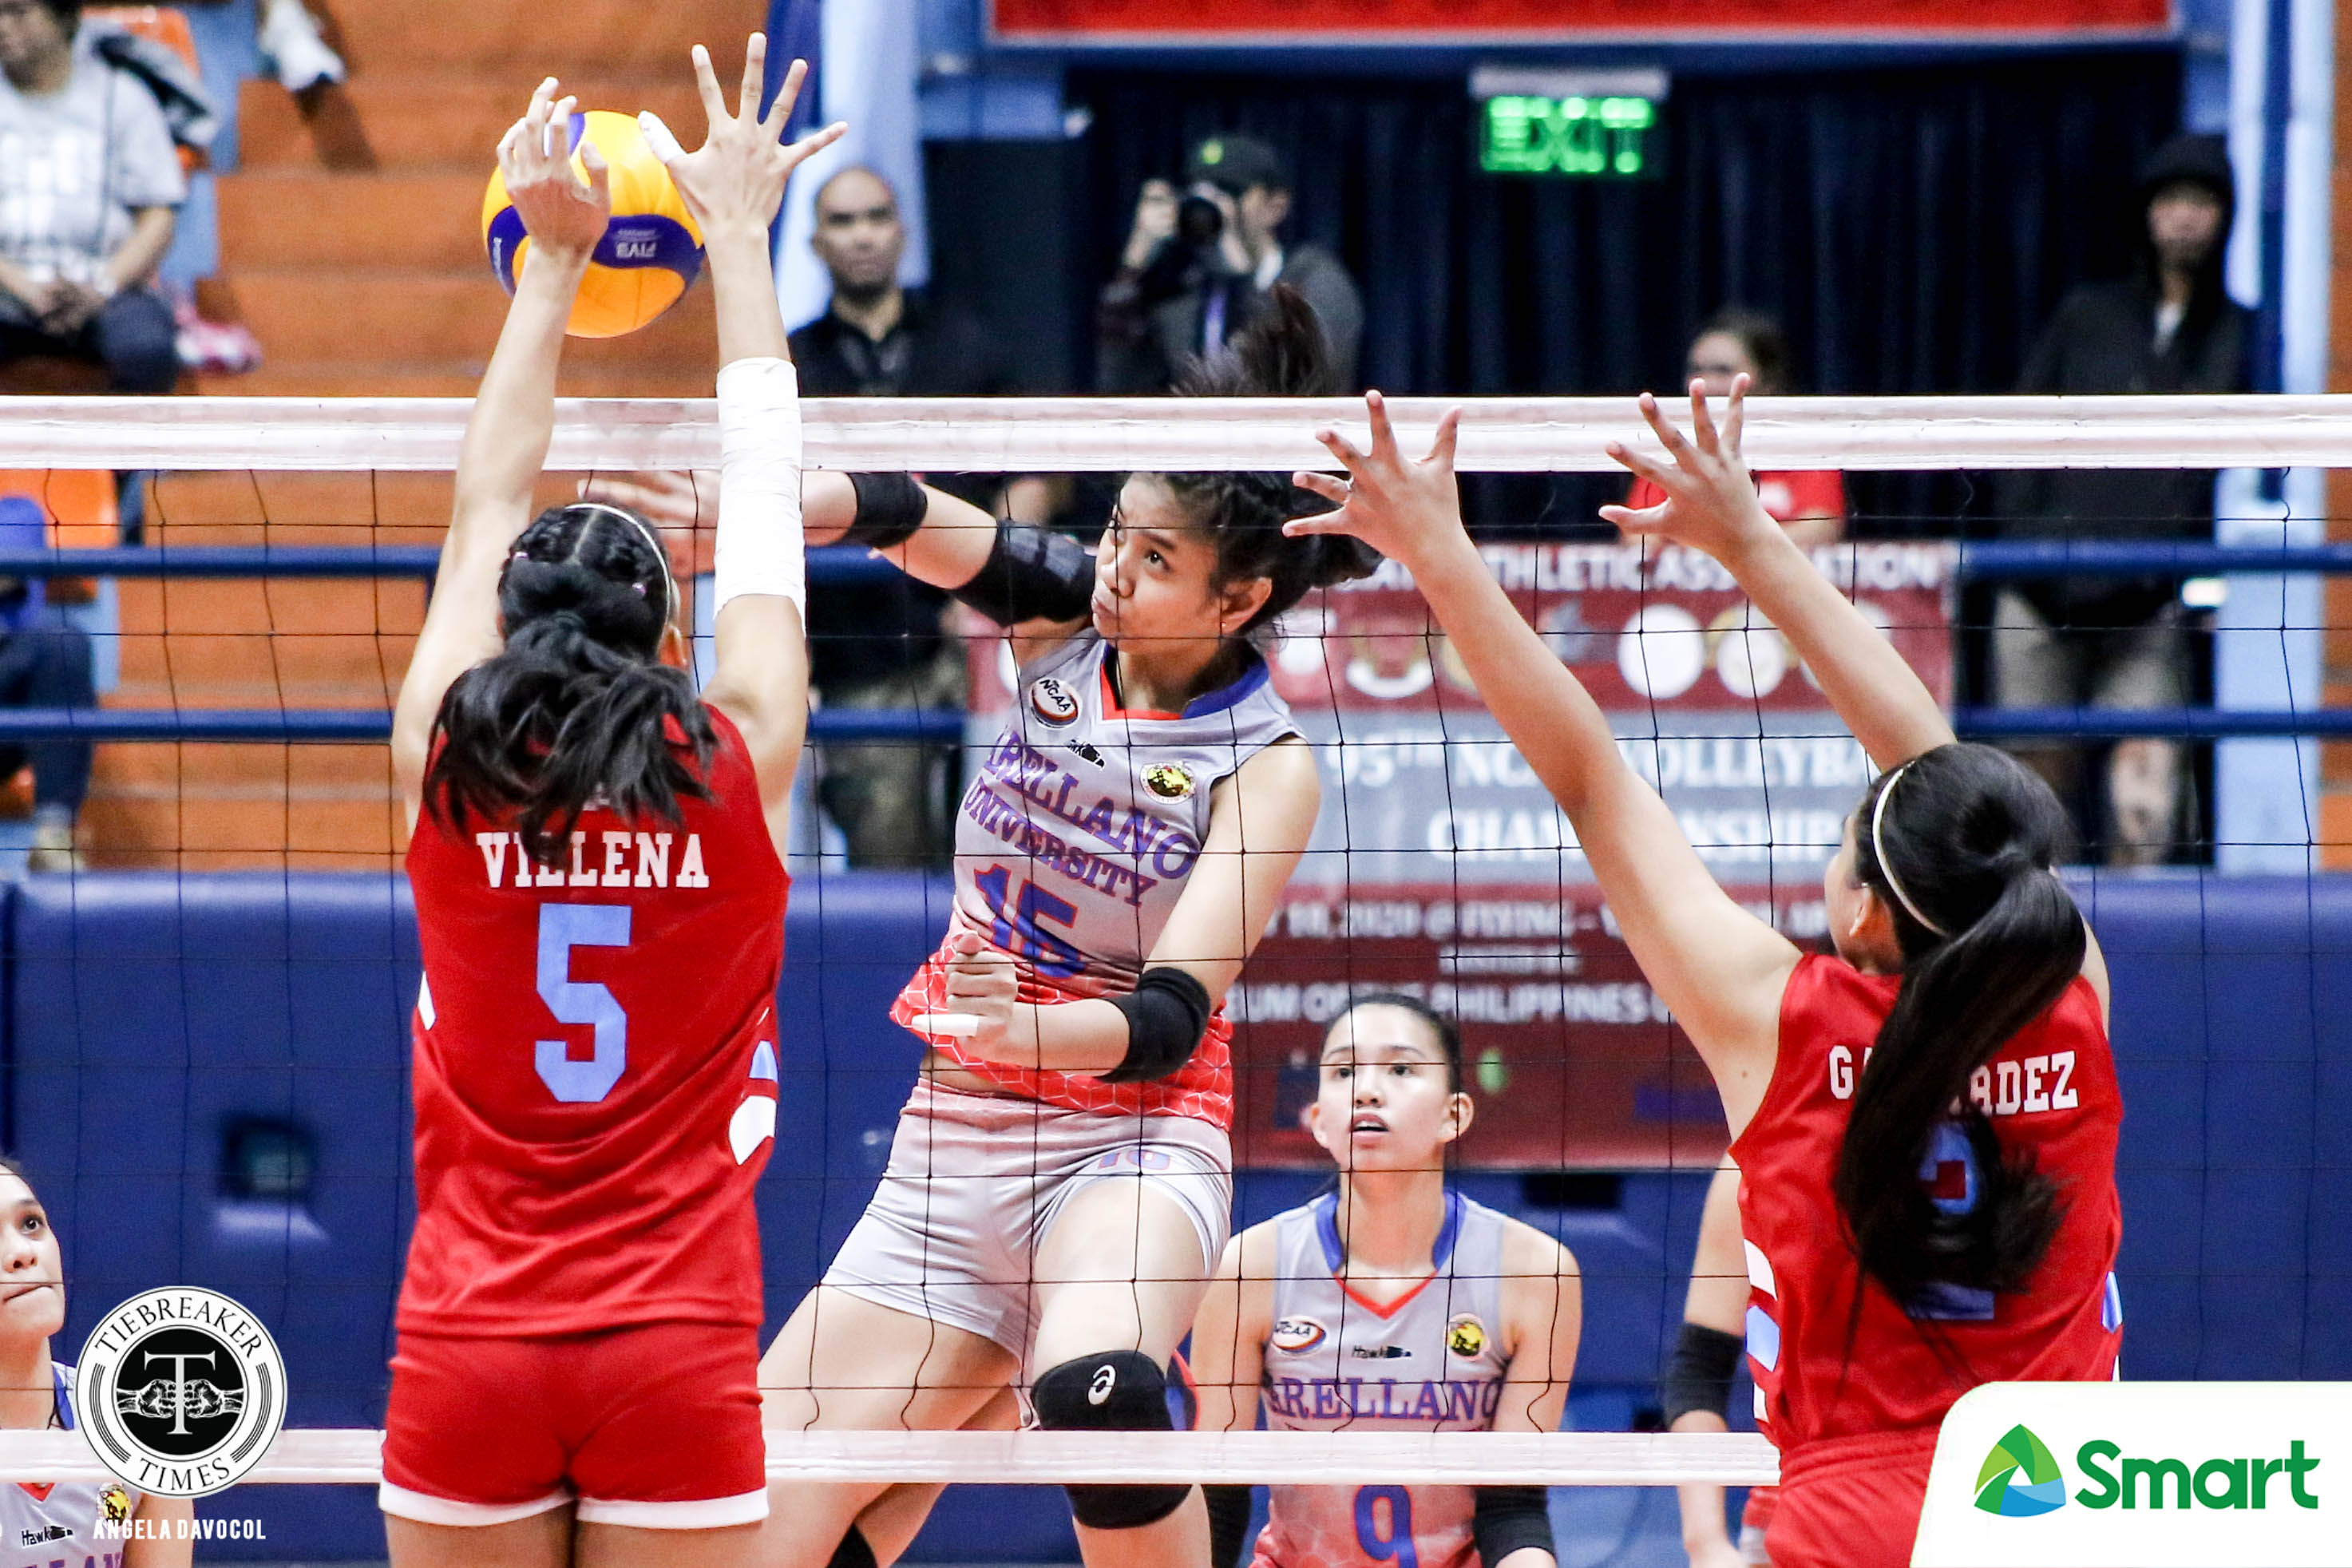 Tiebreaker Times Arocha-less Arellano Lady Chiefs sweep EAC, stay within range of NCAA 95 twice-to-beat AU EAC NCAA News Volleyball  Sarah Verutiao Rod Palmero Princess Bello Obet Javier Necole Ebuen NCAA Season 95 Women's Volleyball NCAA Season 95 Kristine Cancio EAC Women's Volleyball Cathrine Almazan Carla Donato Arellano Women's Volleyball